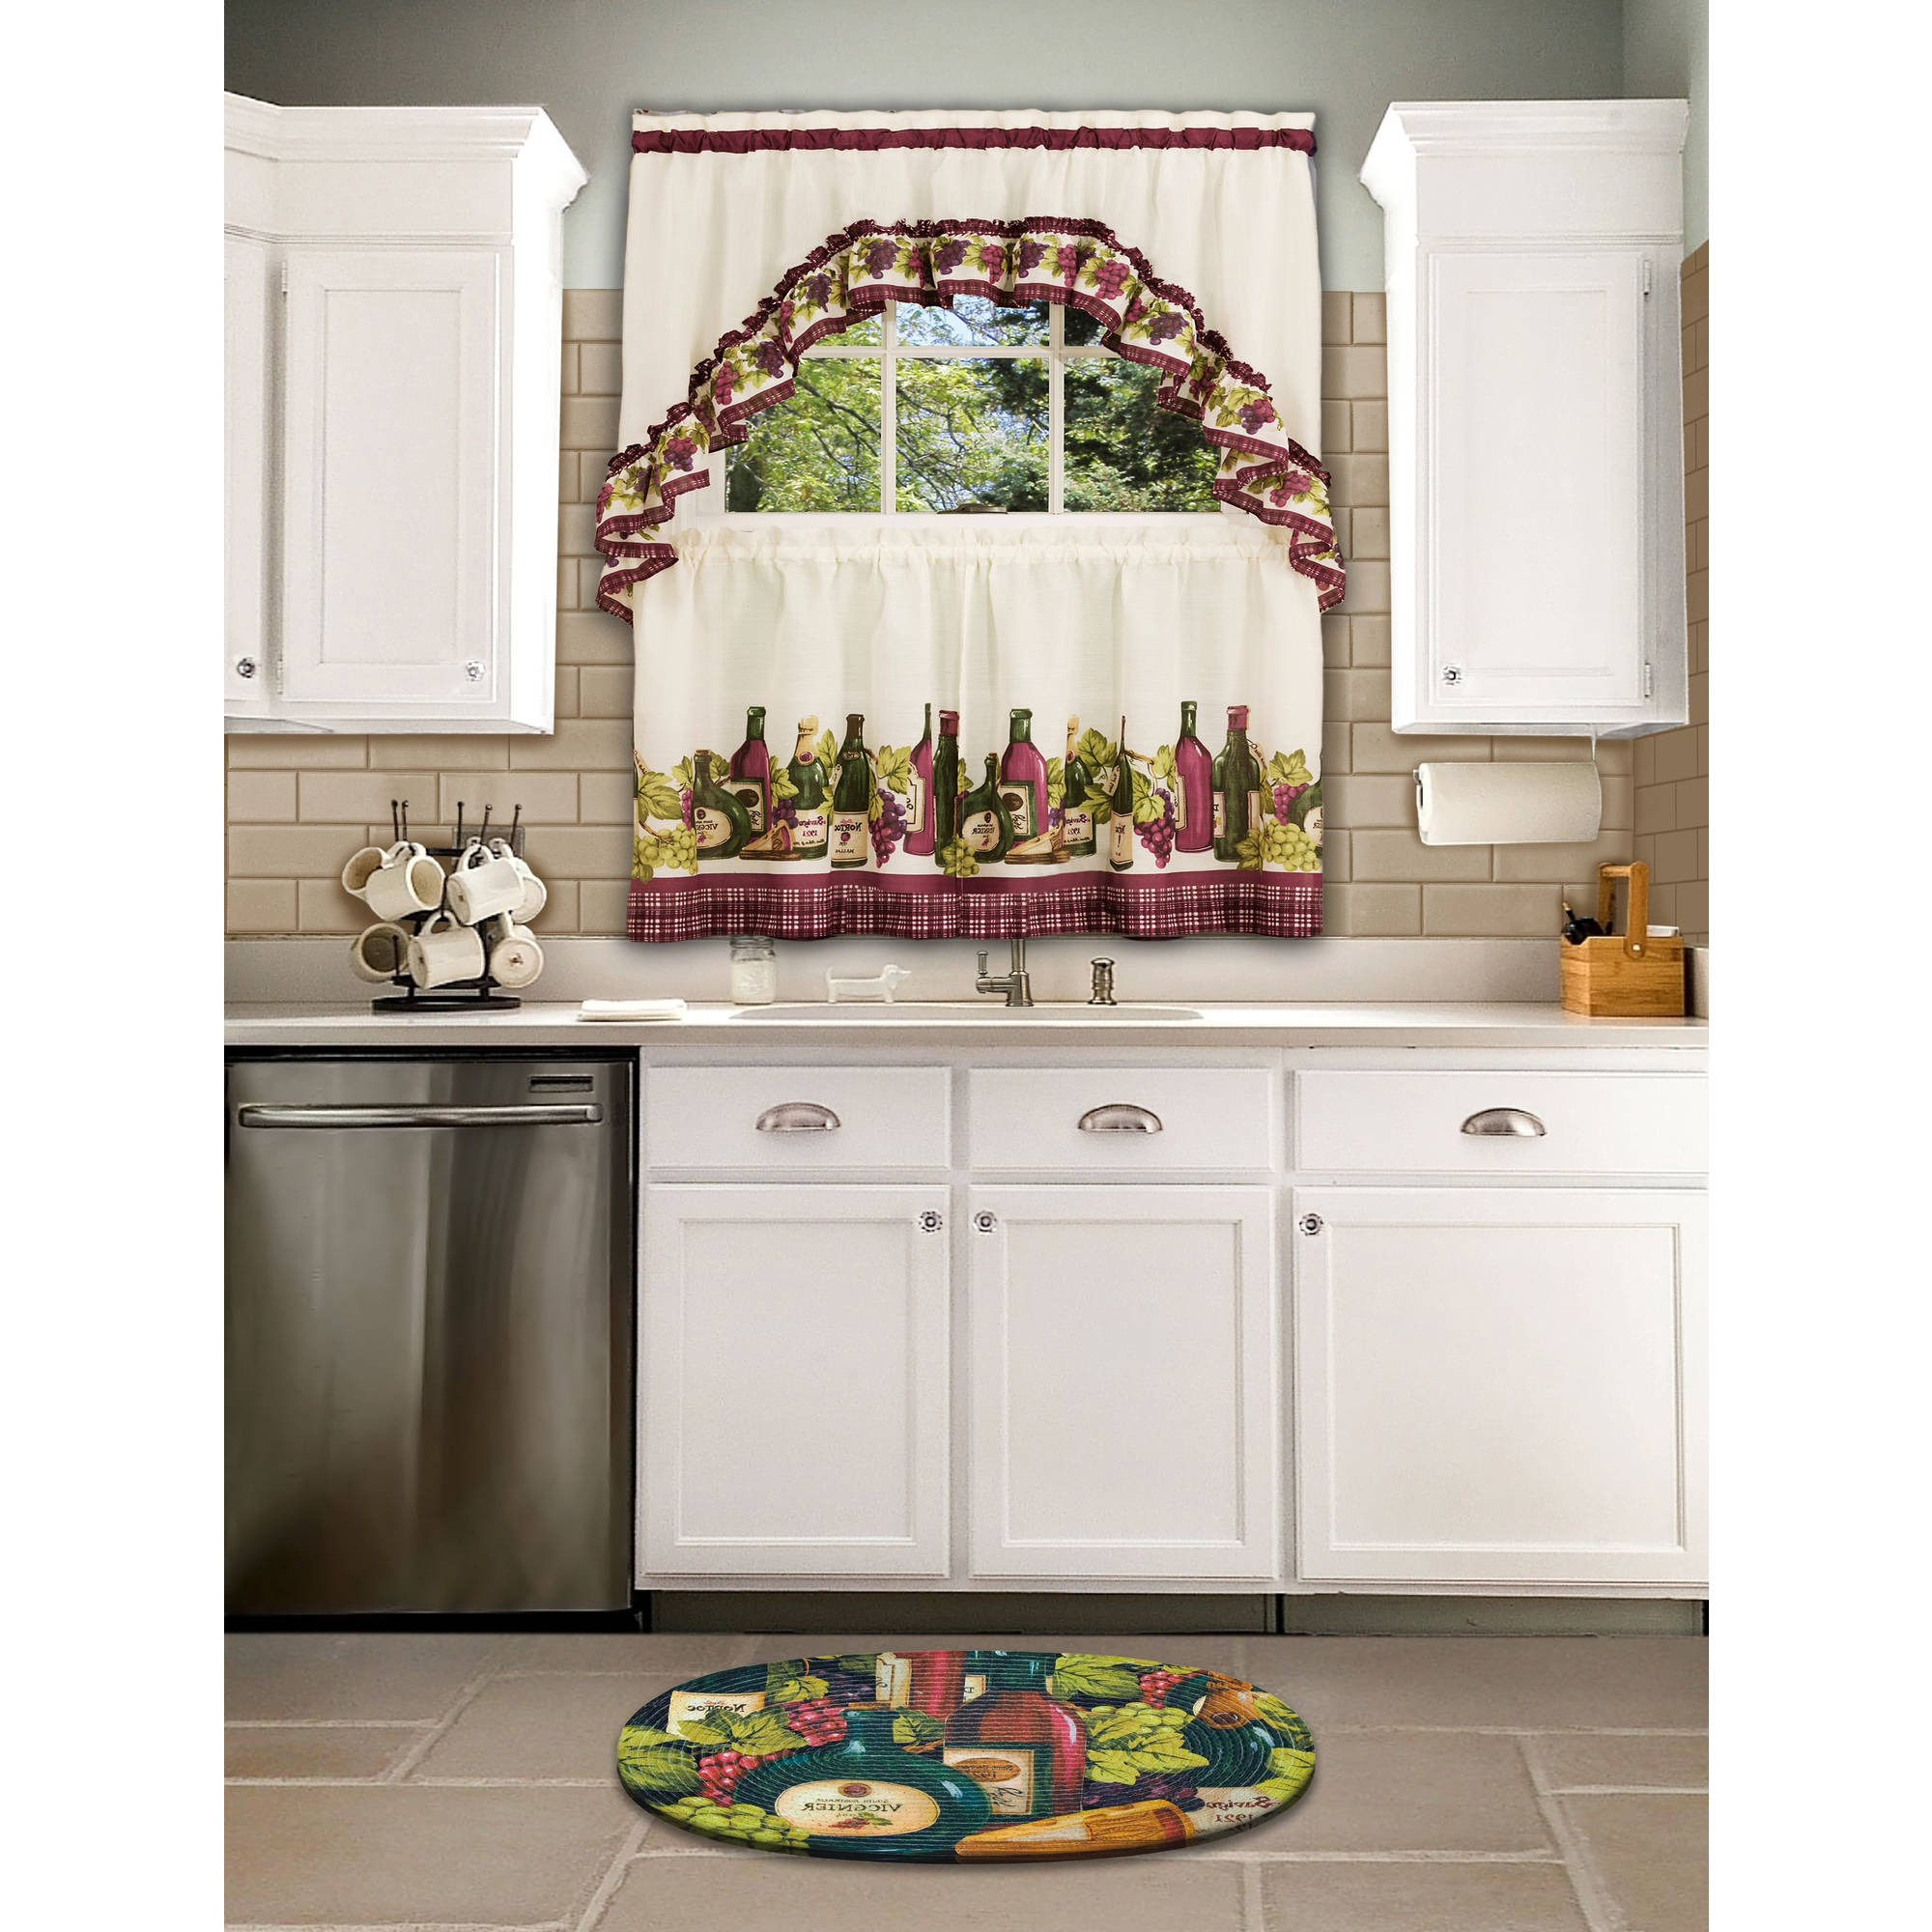 Chardonnay Tier And Swag Kitchen Curtain Sets Throughout Well Known Chardonnay Kitchen Curtain & Swag Set, 1 Each (View 11 of 20)